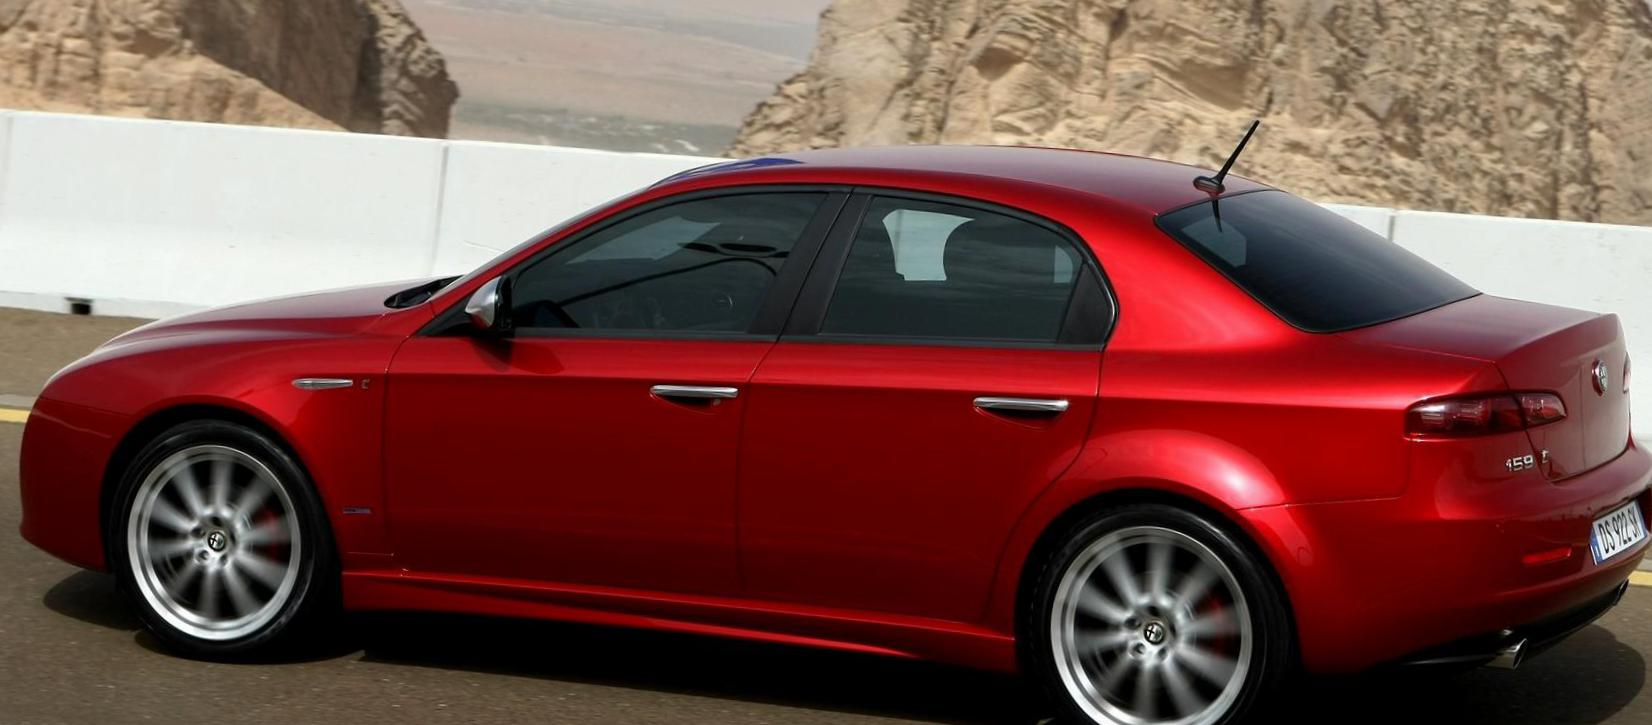 Alfa Romeo 159 how mach 2006